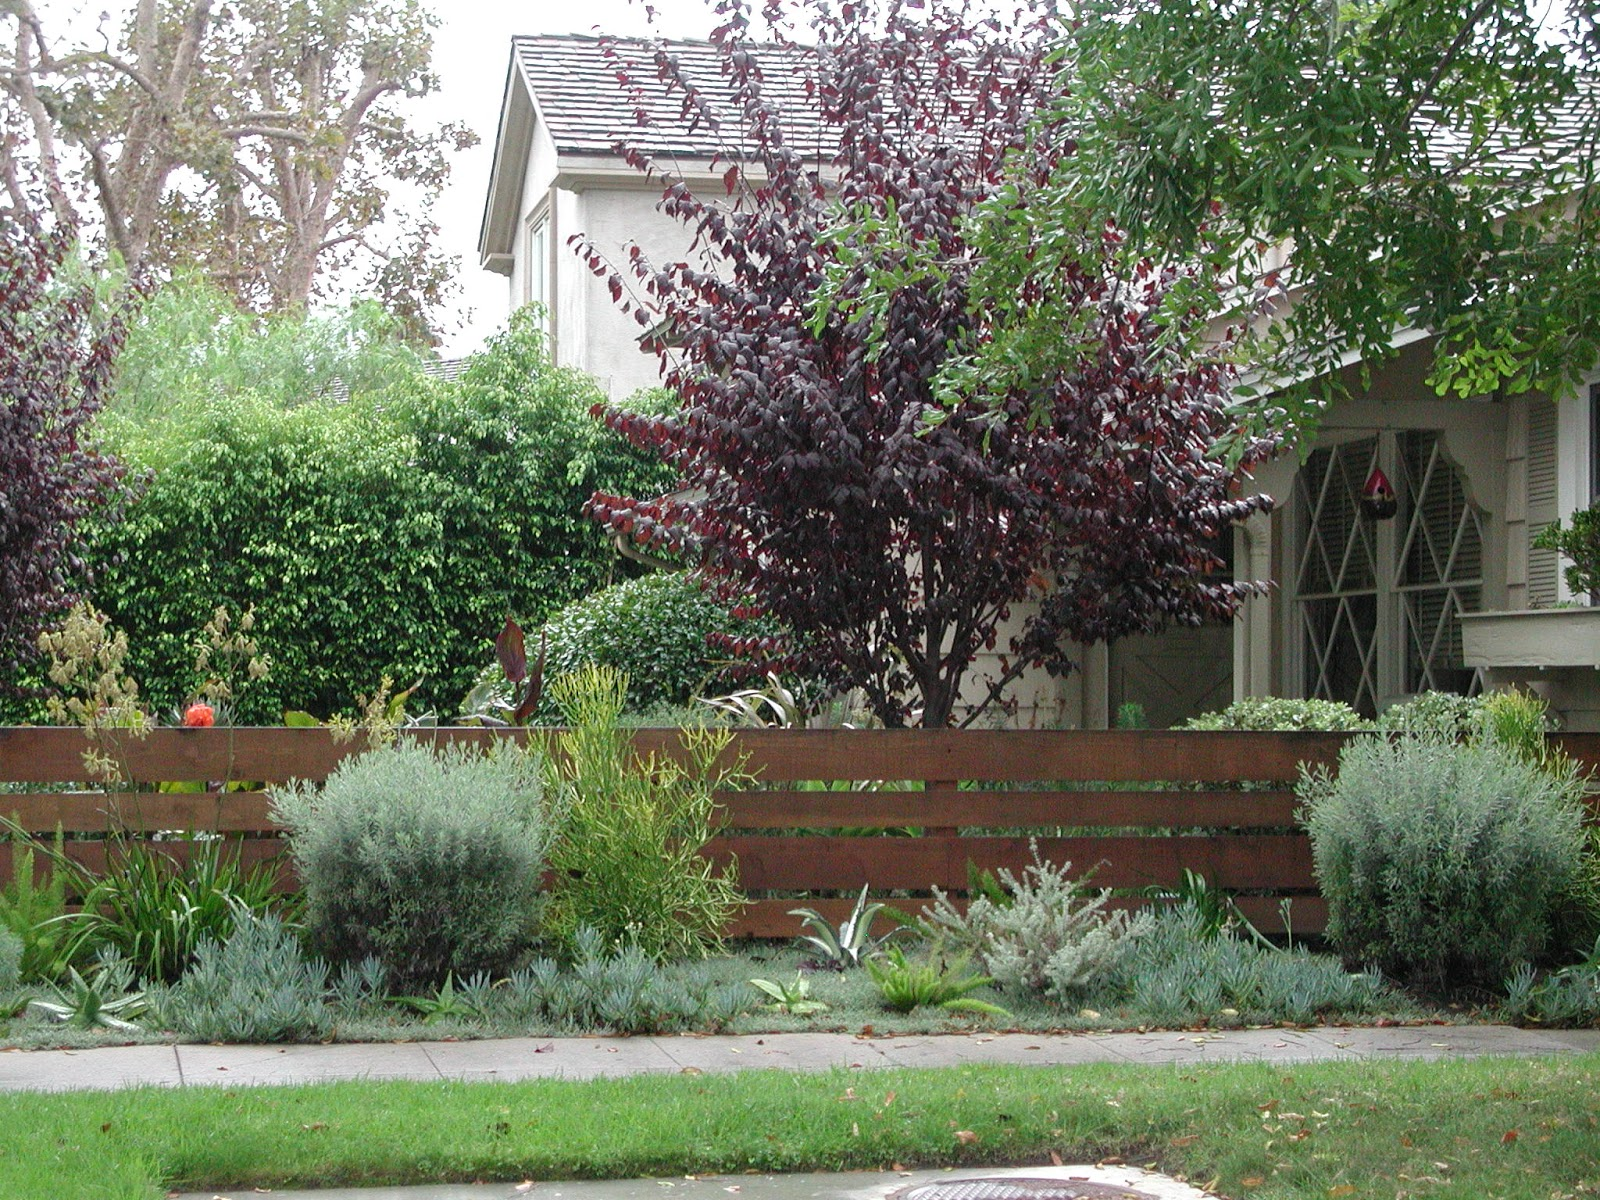 Fairy yardmother landscape design front yard fences - Fence designs for front yards ...